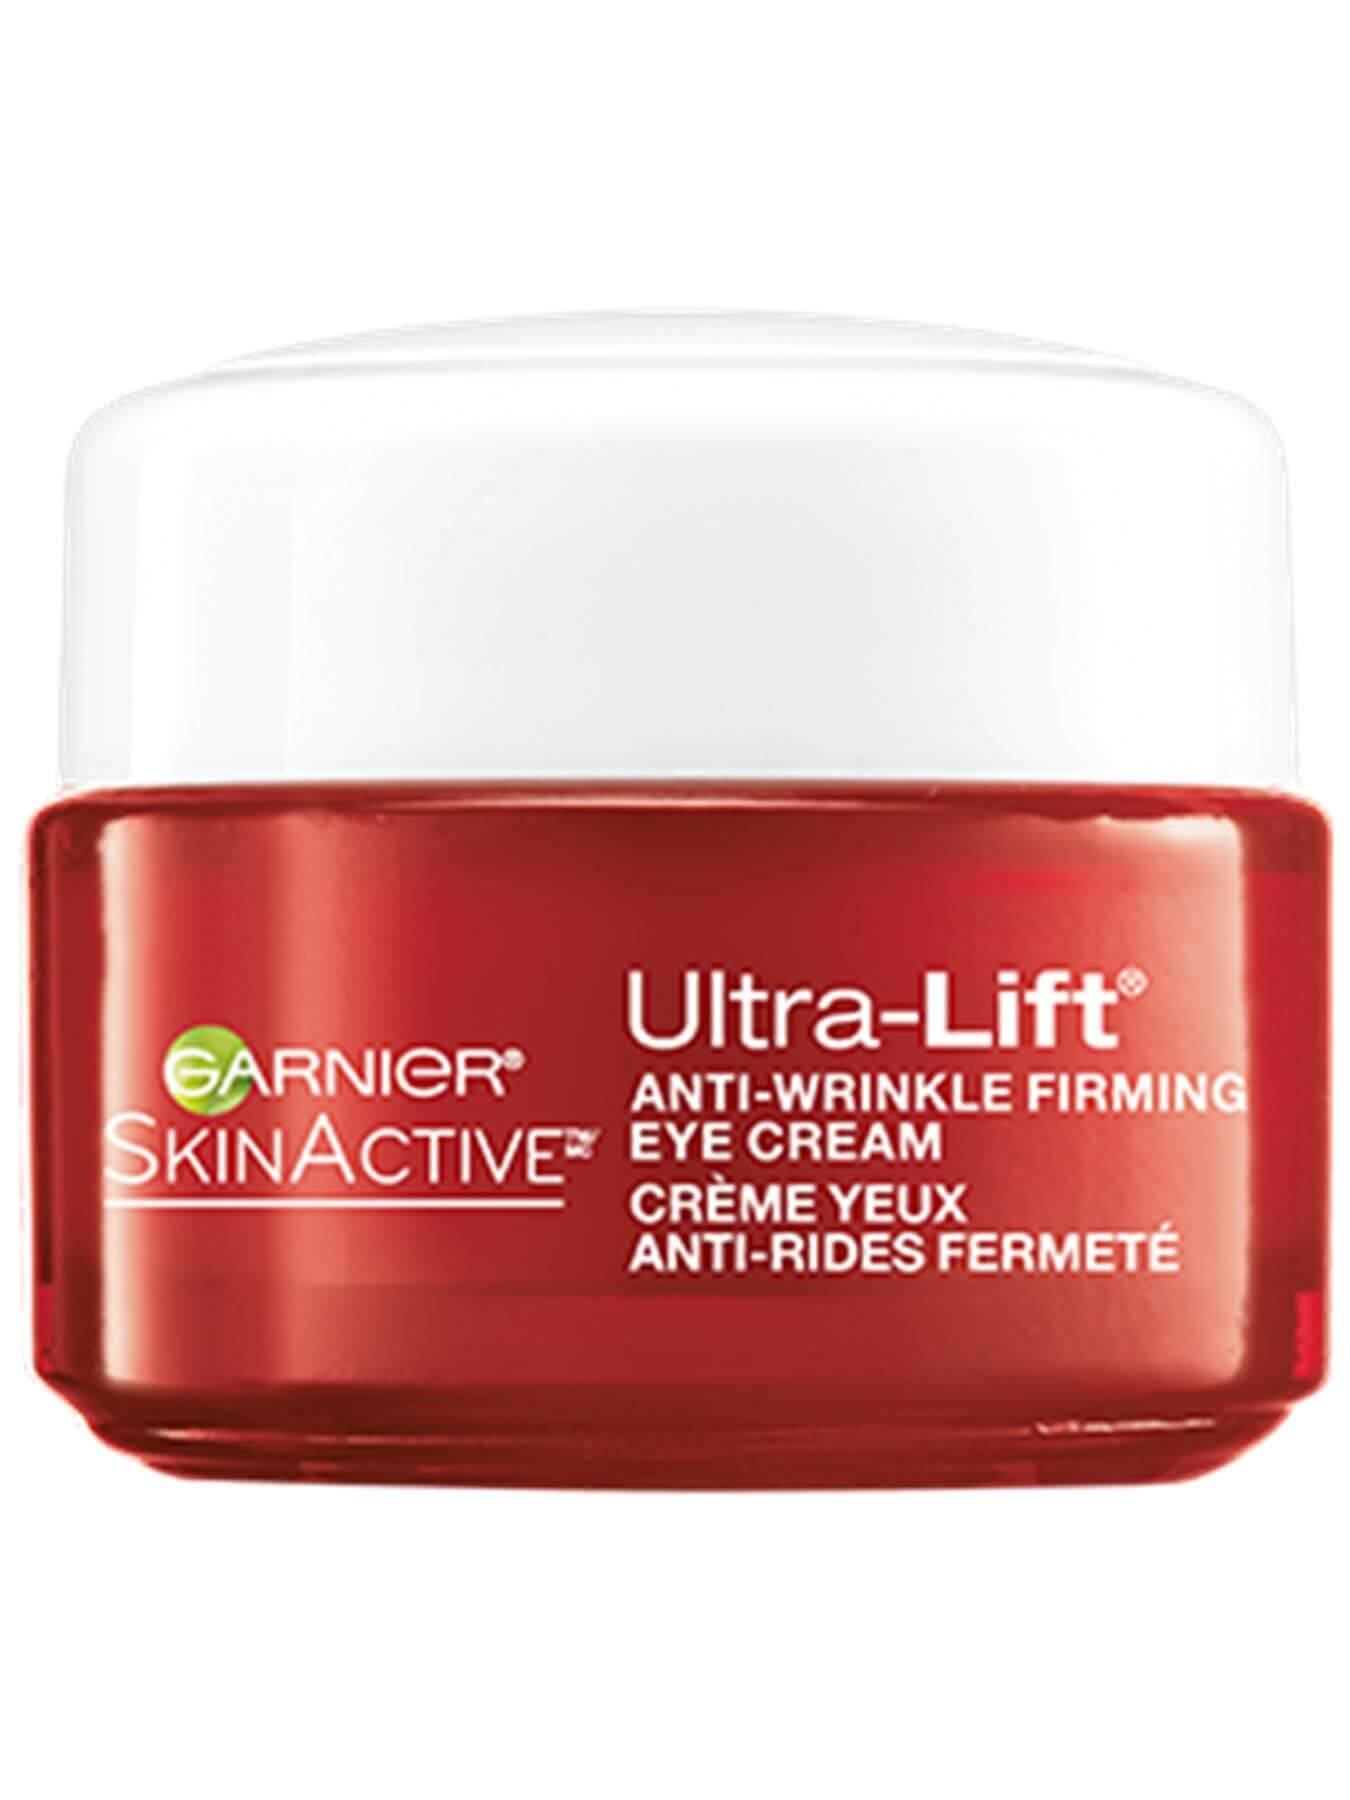 Front view of Ultra-Lift Anti-Wrinkle Eye Cream.